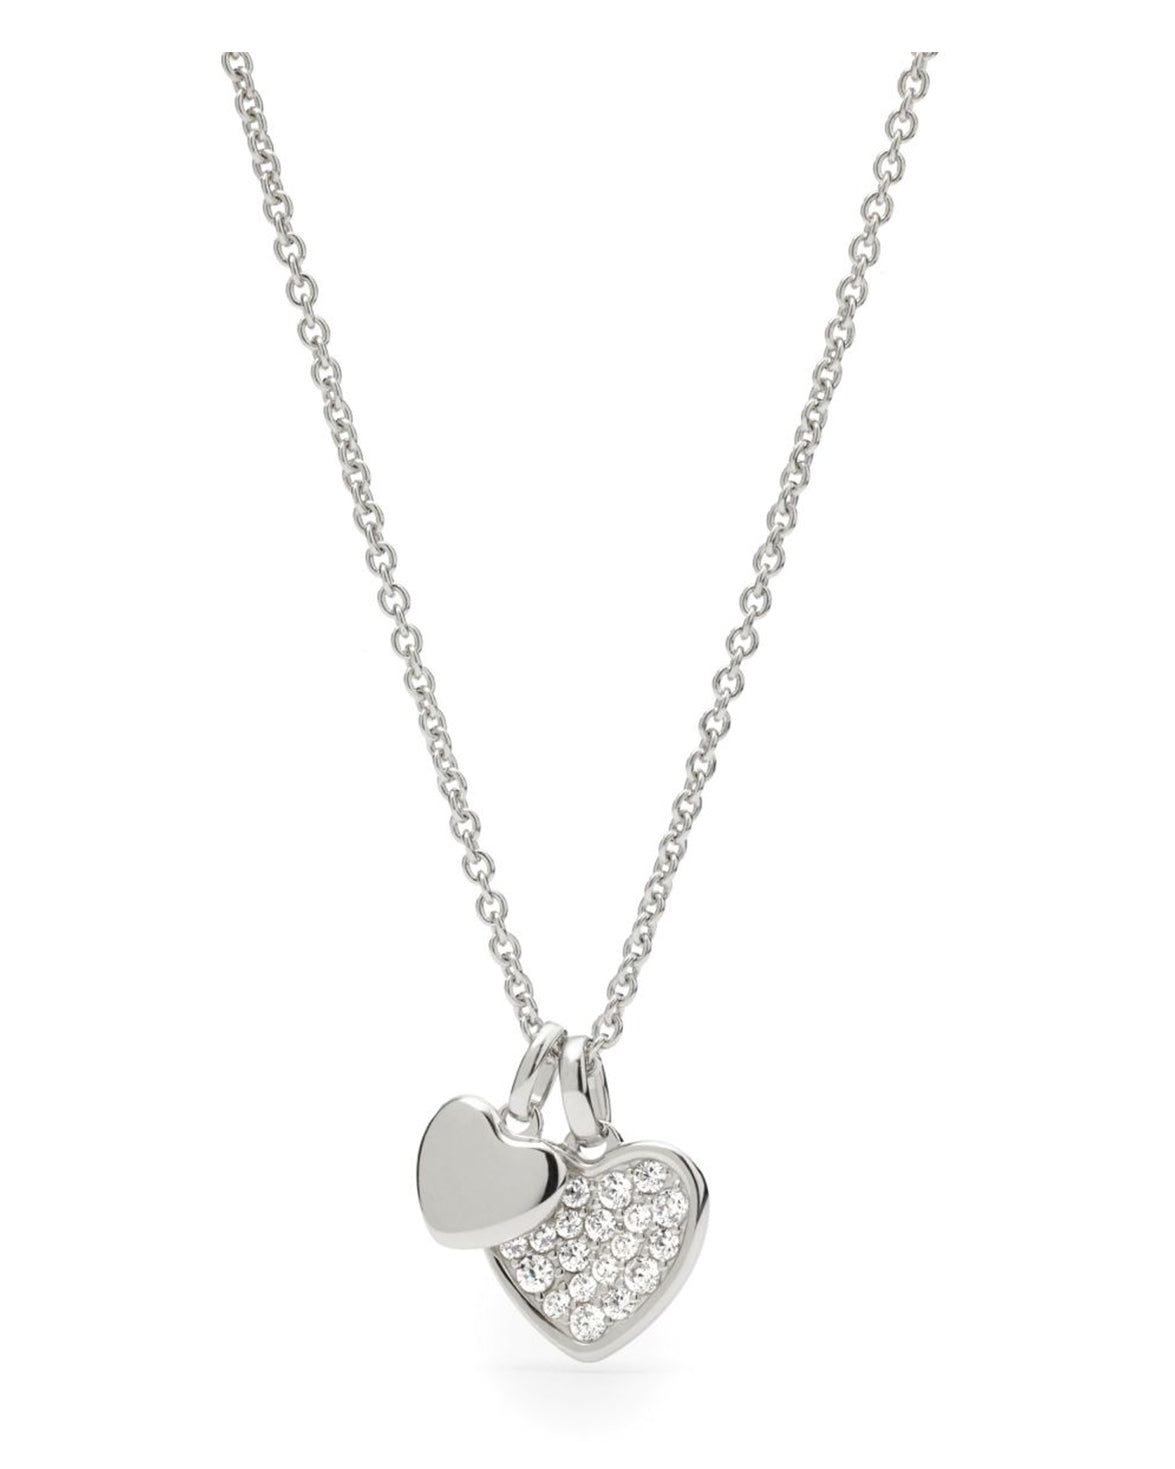 Fossil Silver Plated Stainless Steel Heart Necklace